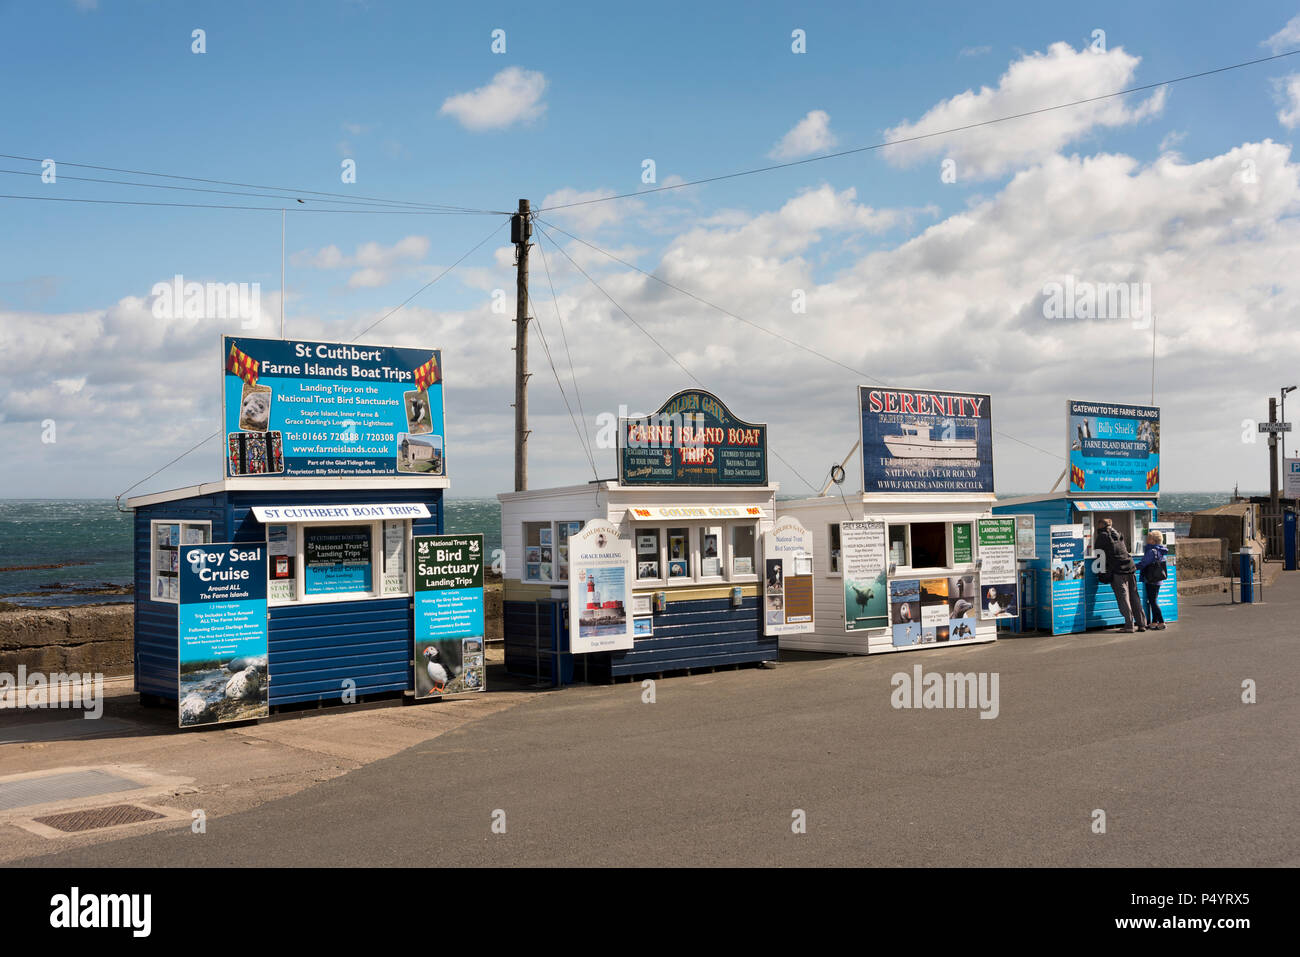 Kiosks selling tickets for Farne Islands sea trips, Seahouses harbour, Northumberland, UK - Stock Image